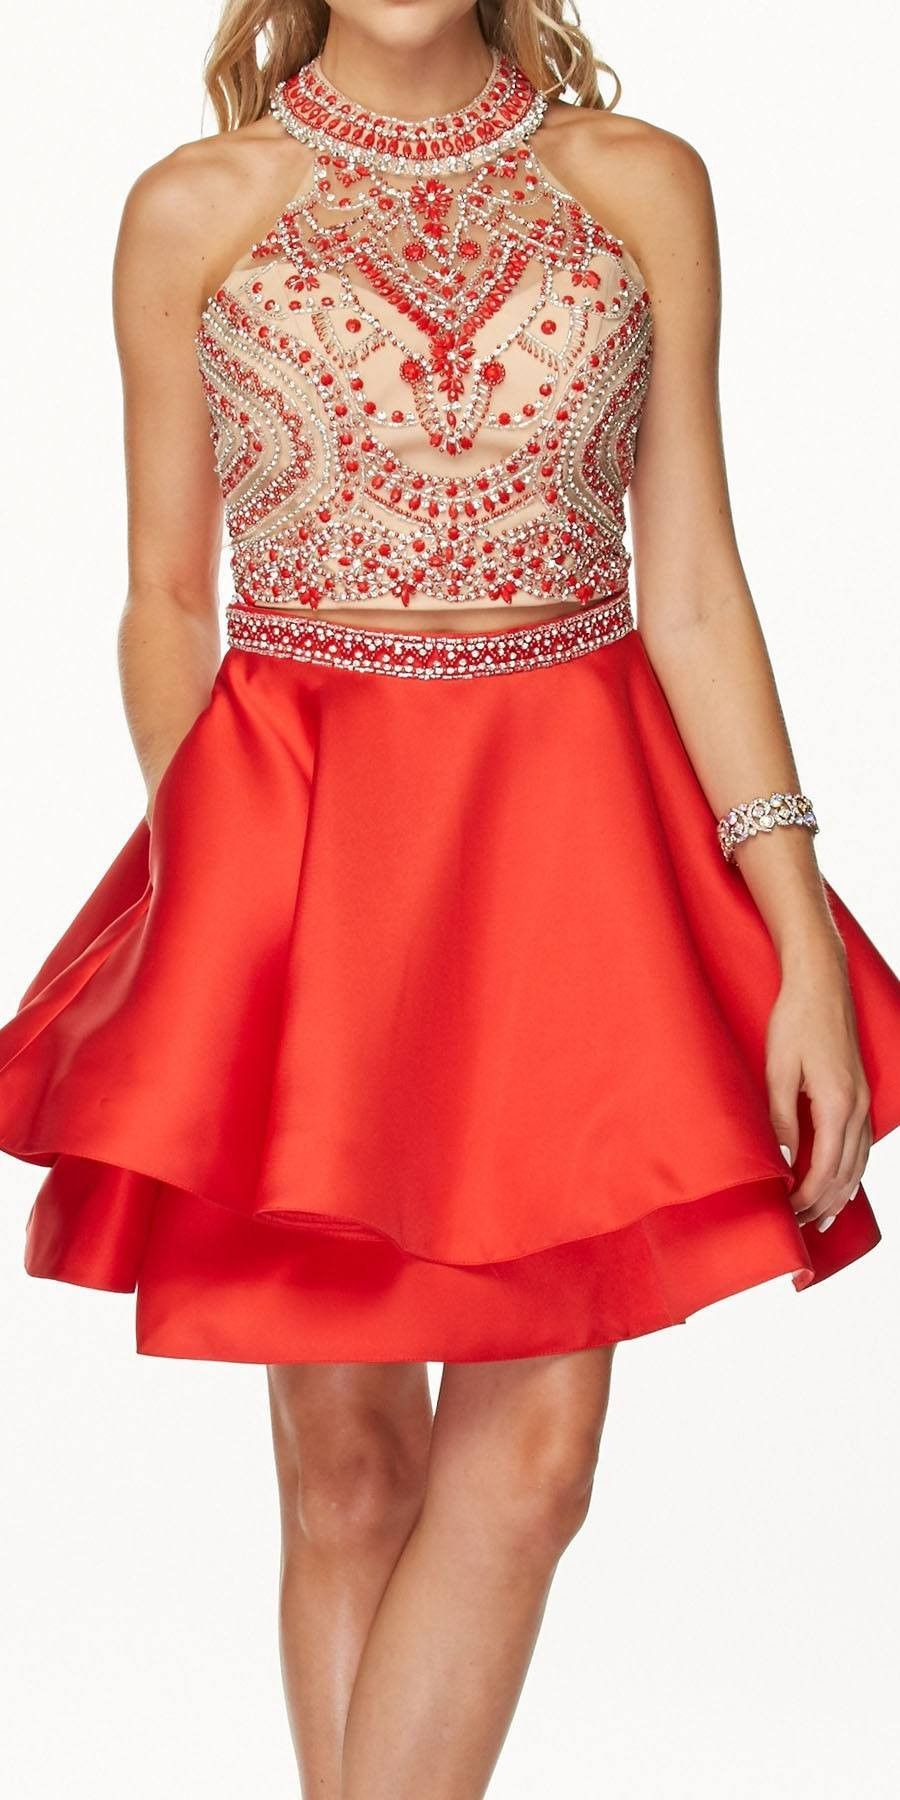 5c5dcd5b1c2b Two-Piece Short Prom Dress Halter Embellished Bodice Red | quince ...